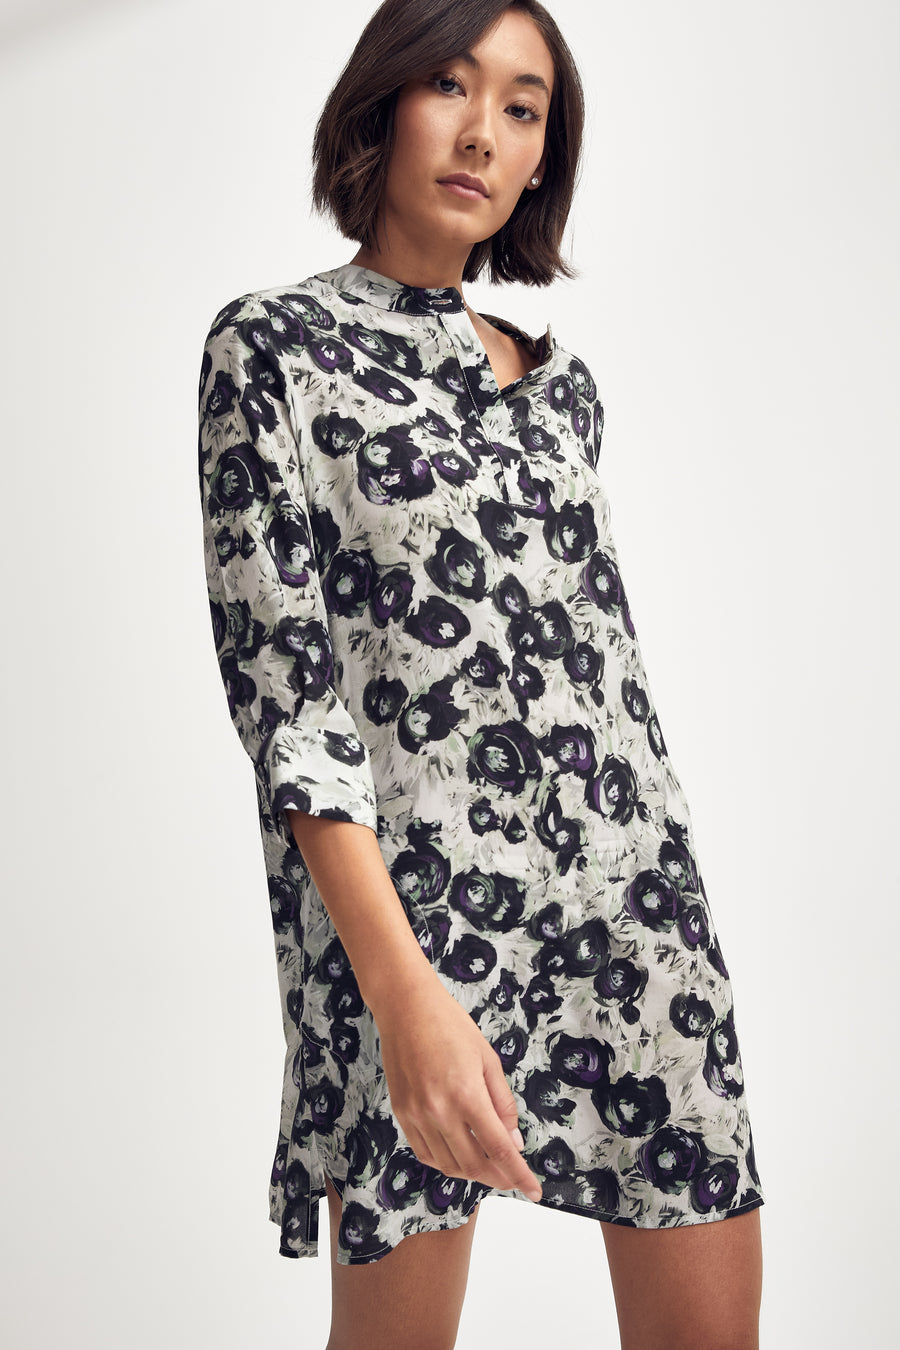 Silk Shirt Dress in Black/White/Purple Peony